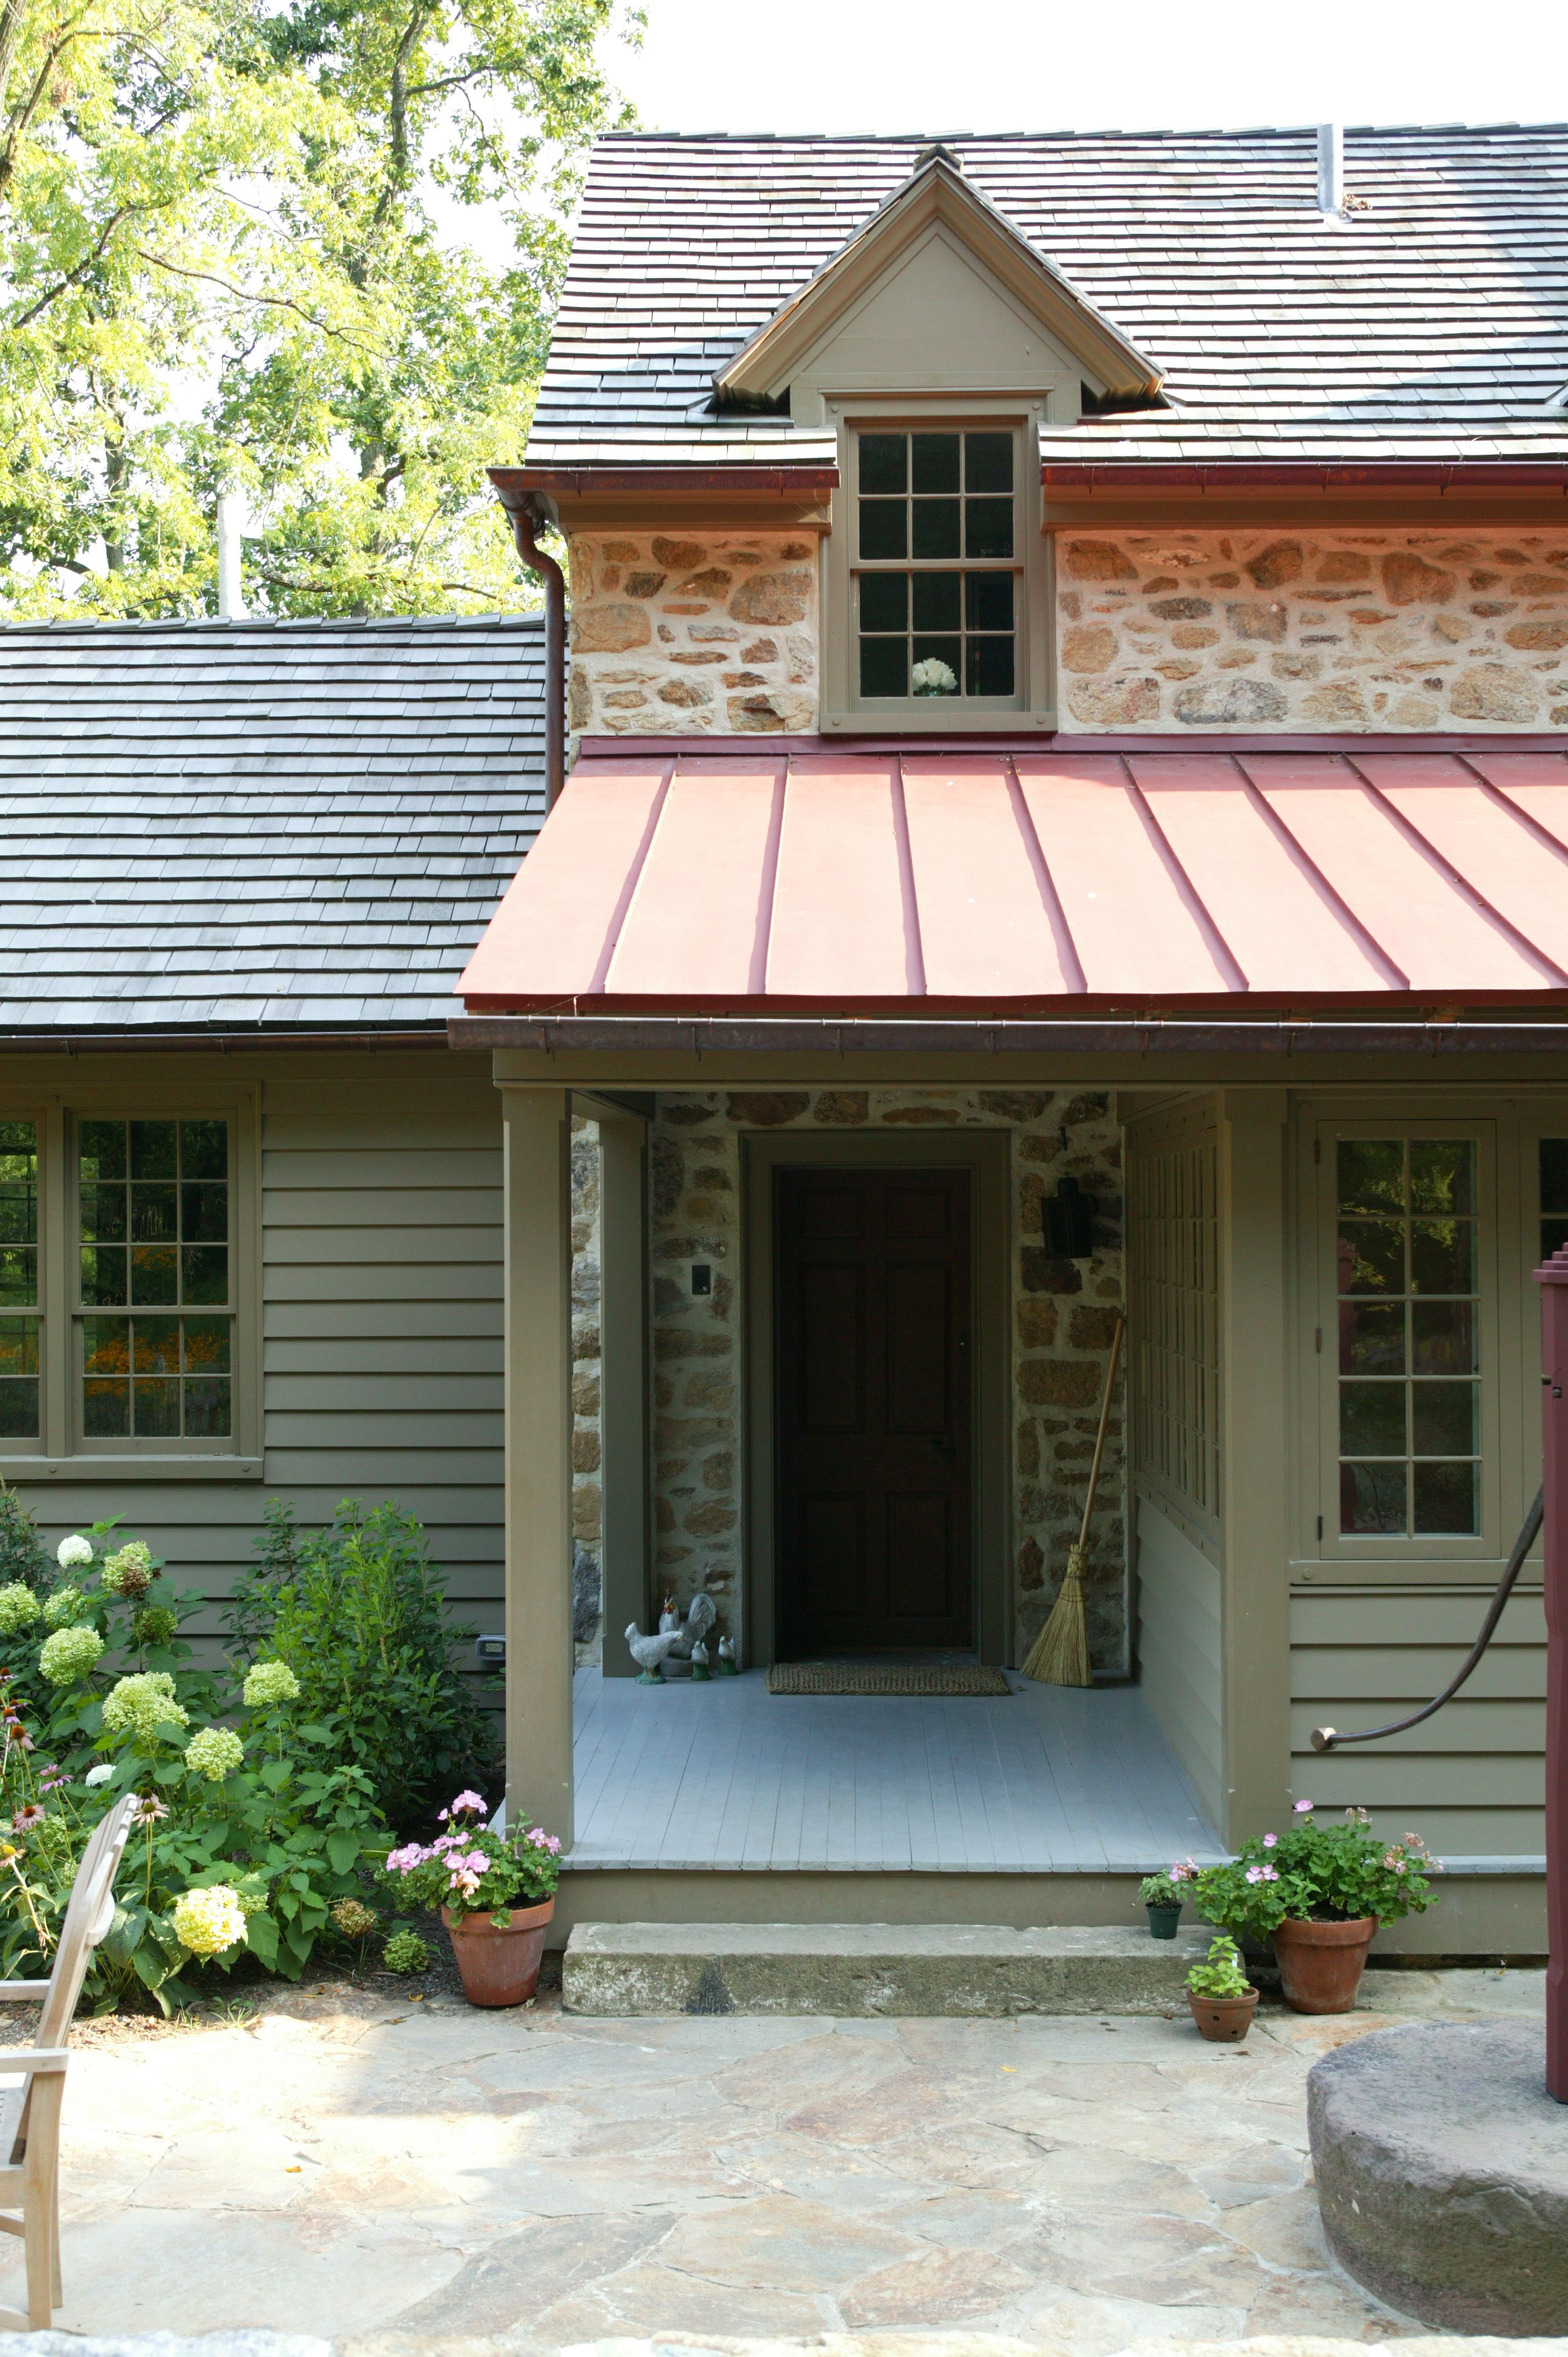 A Covered Porch With A Standing Seam Tin Roof Create A Charming